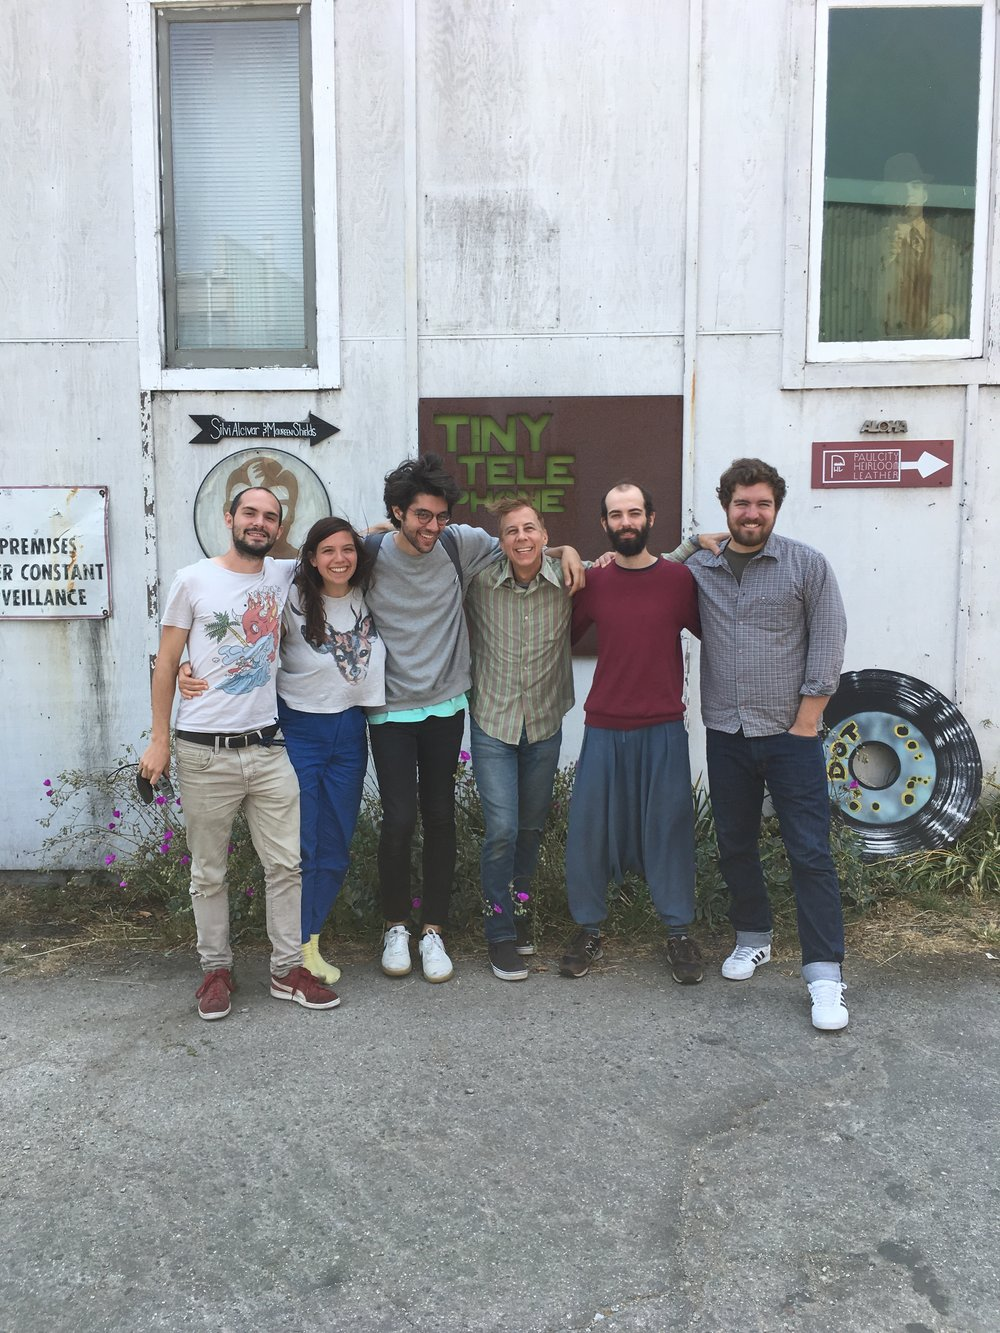 From left to right: Jeremie Revel, Gina Été, Omar Akrouche (engineer, assistant), John Vanderslice (producer), Noé Franklé, Phillip Klawitter